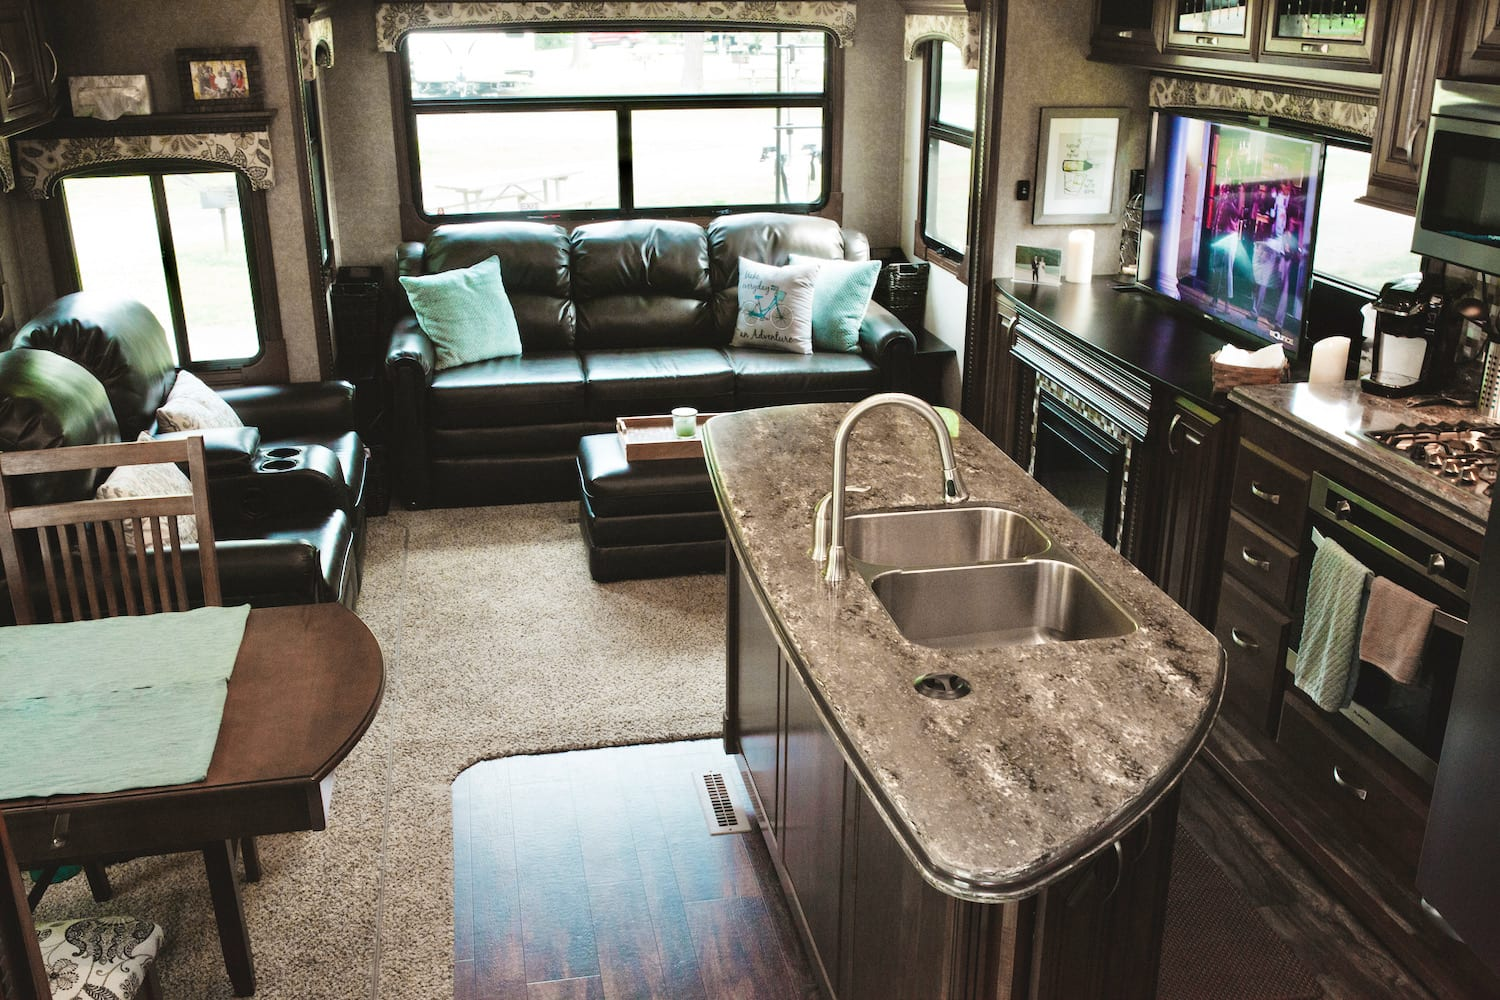 Interior view of back of Jayco Pinnacle FBTS living space.